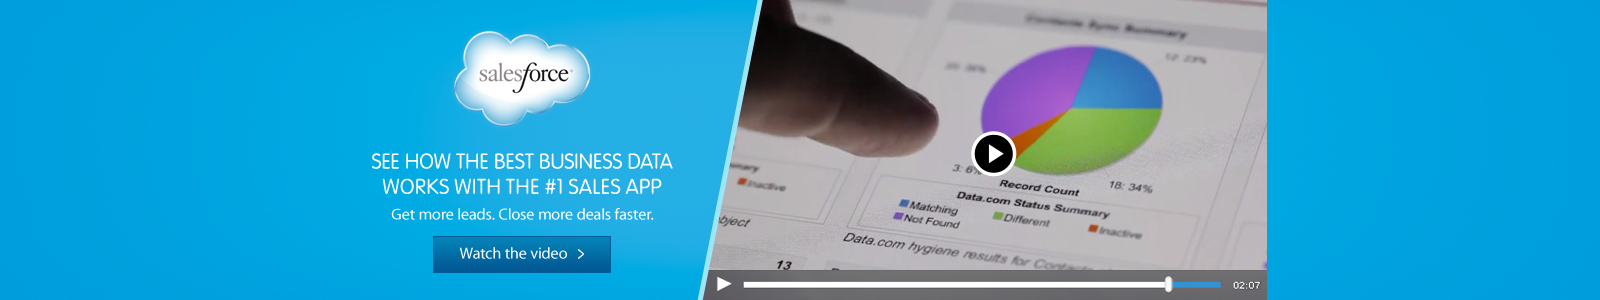 See how the best business data works with the #1 Sales App